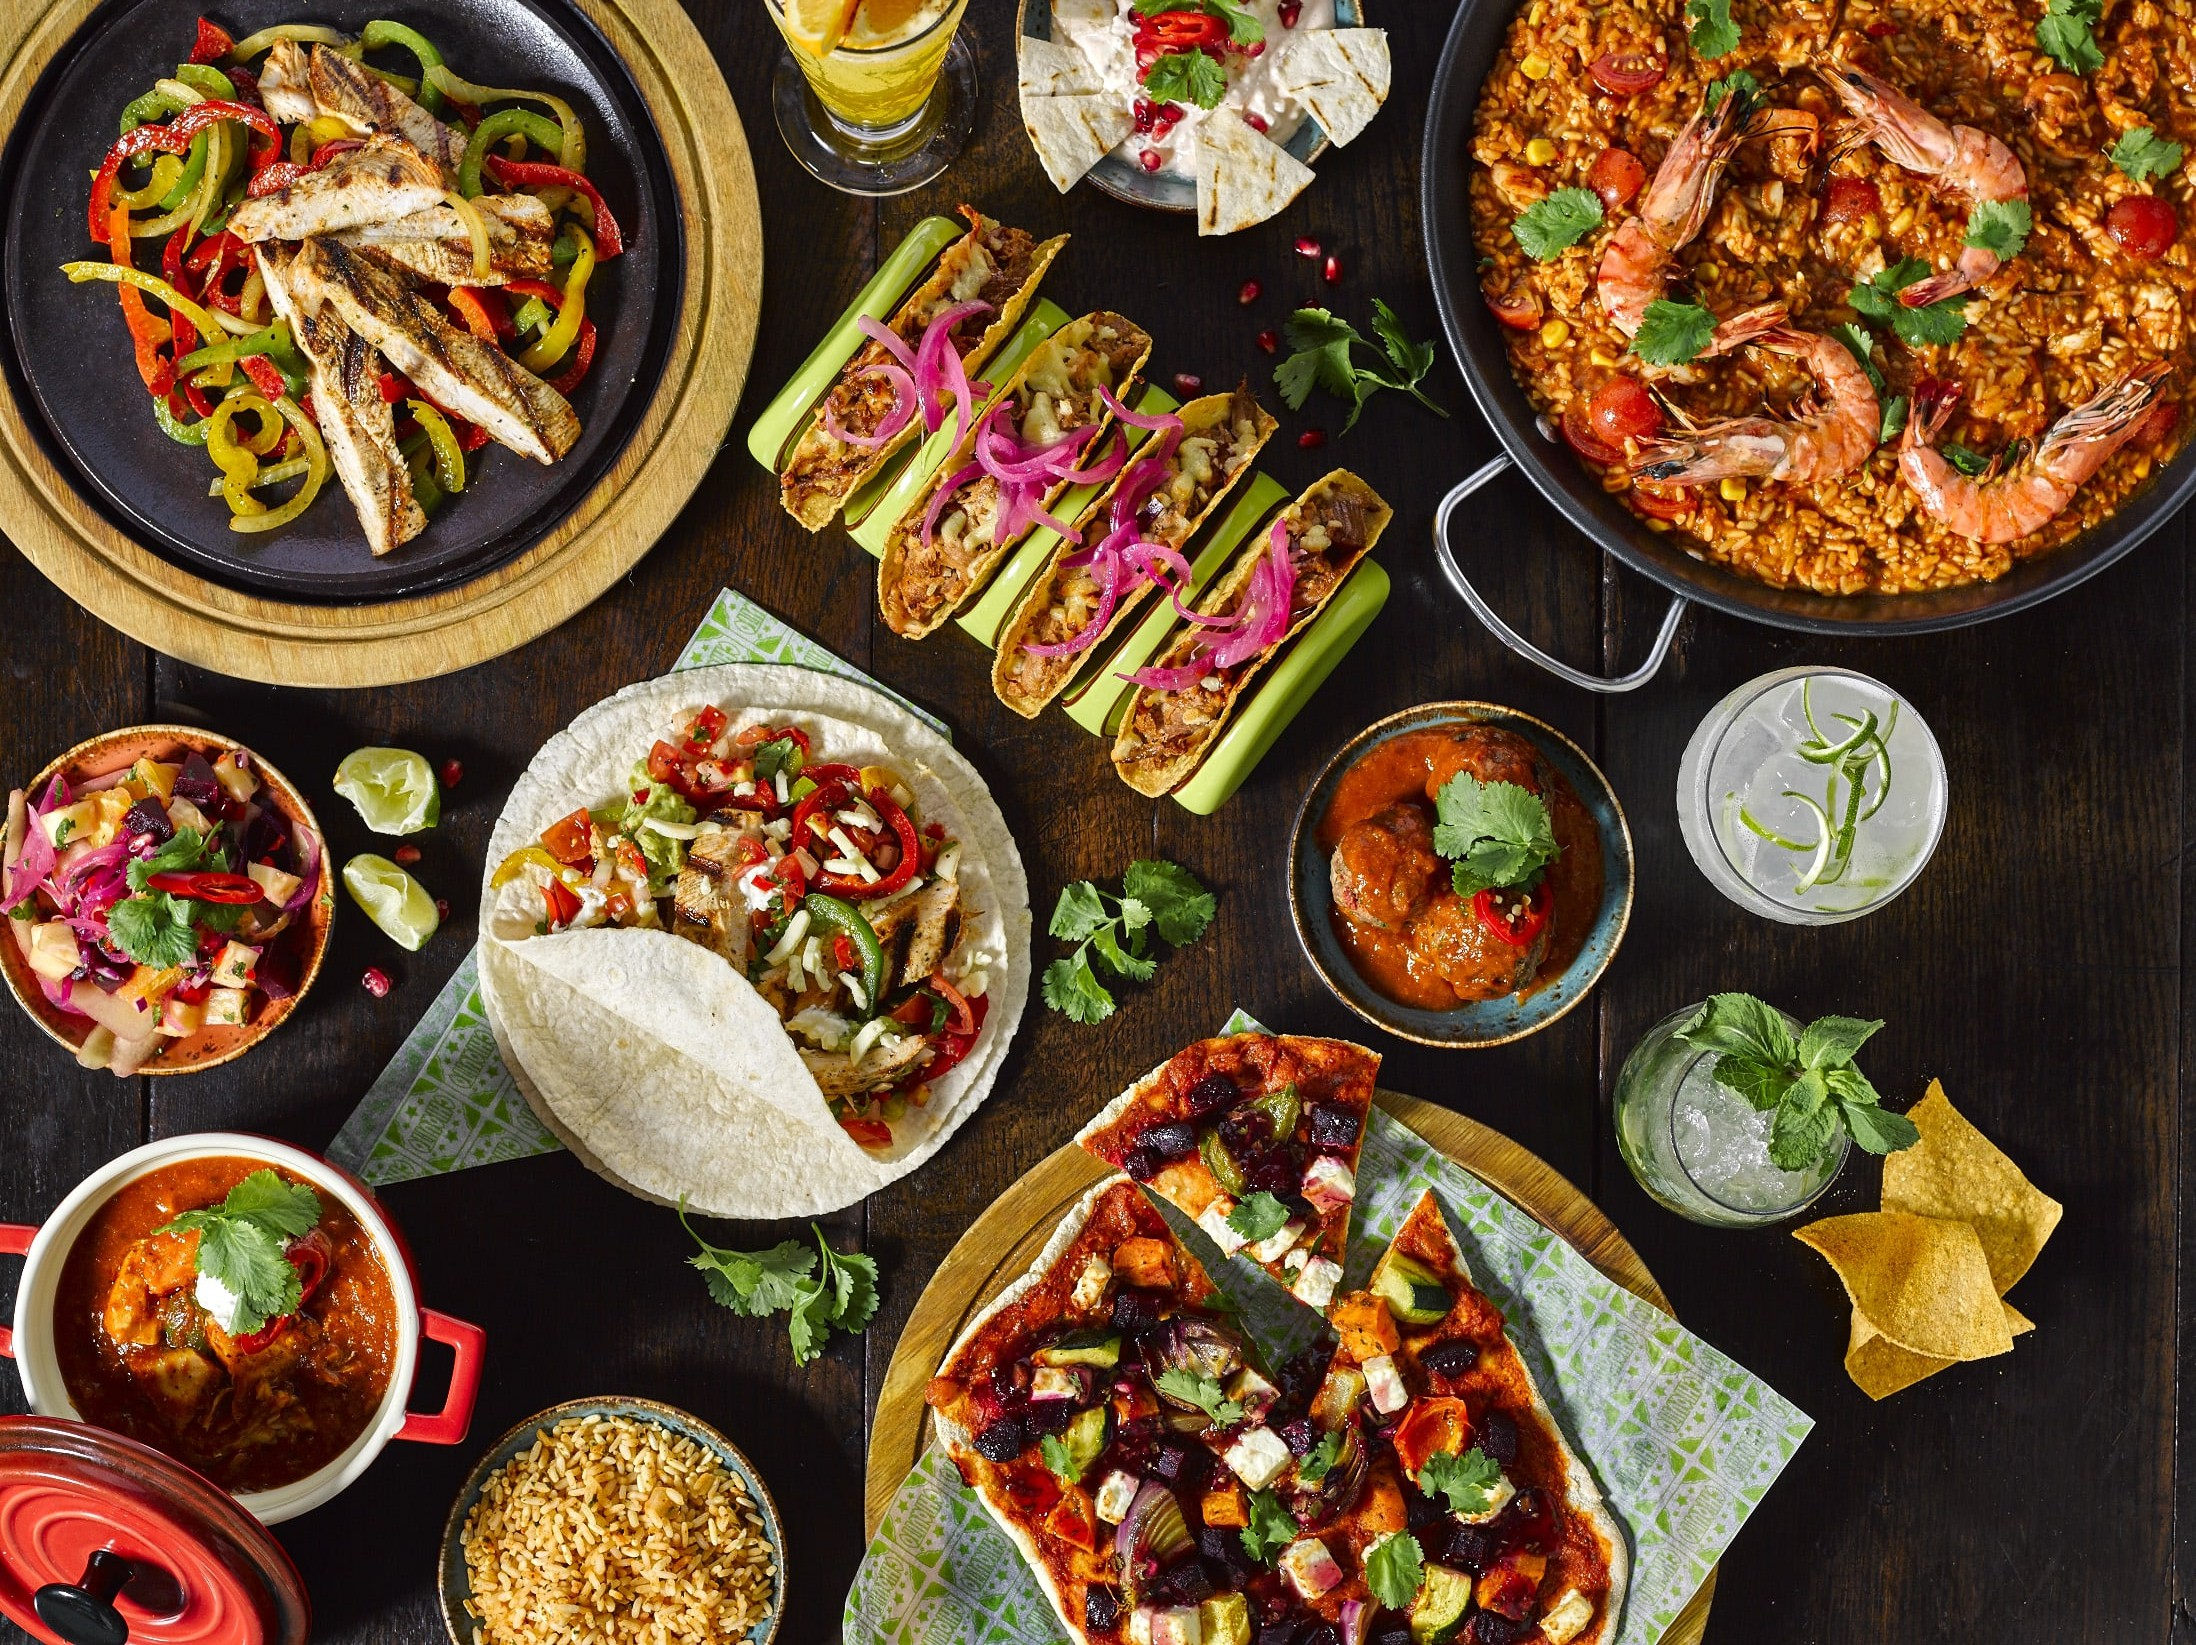 Chiquito - East Kilbride - South Lanarkshire